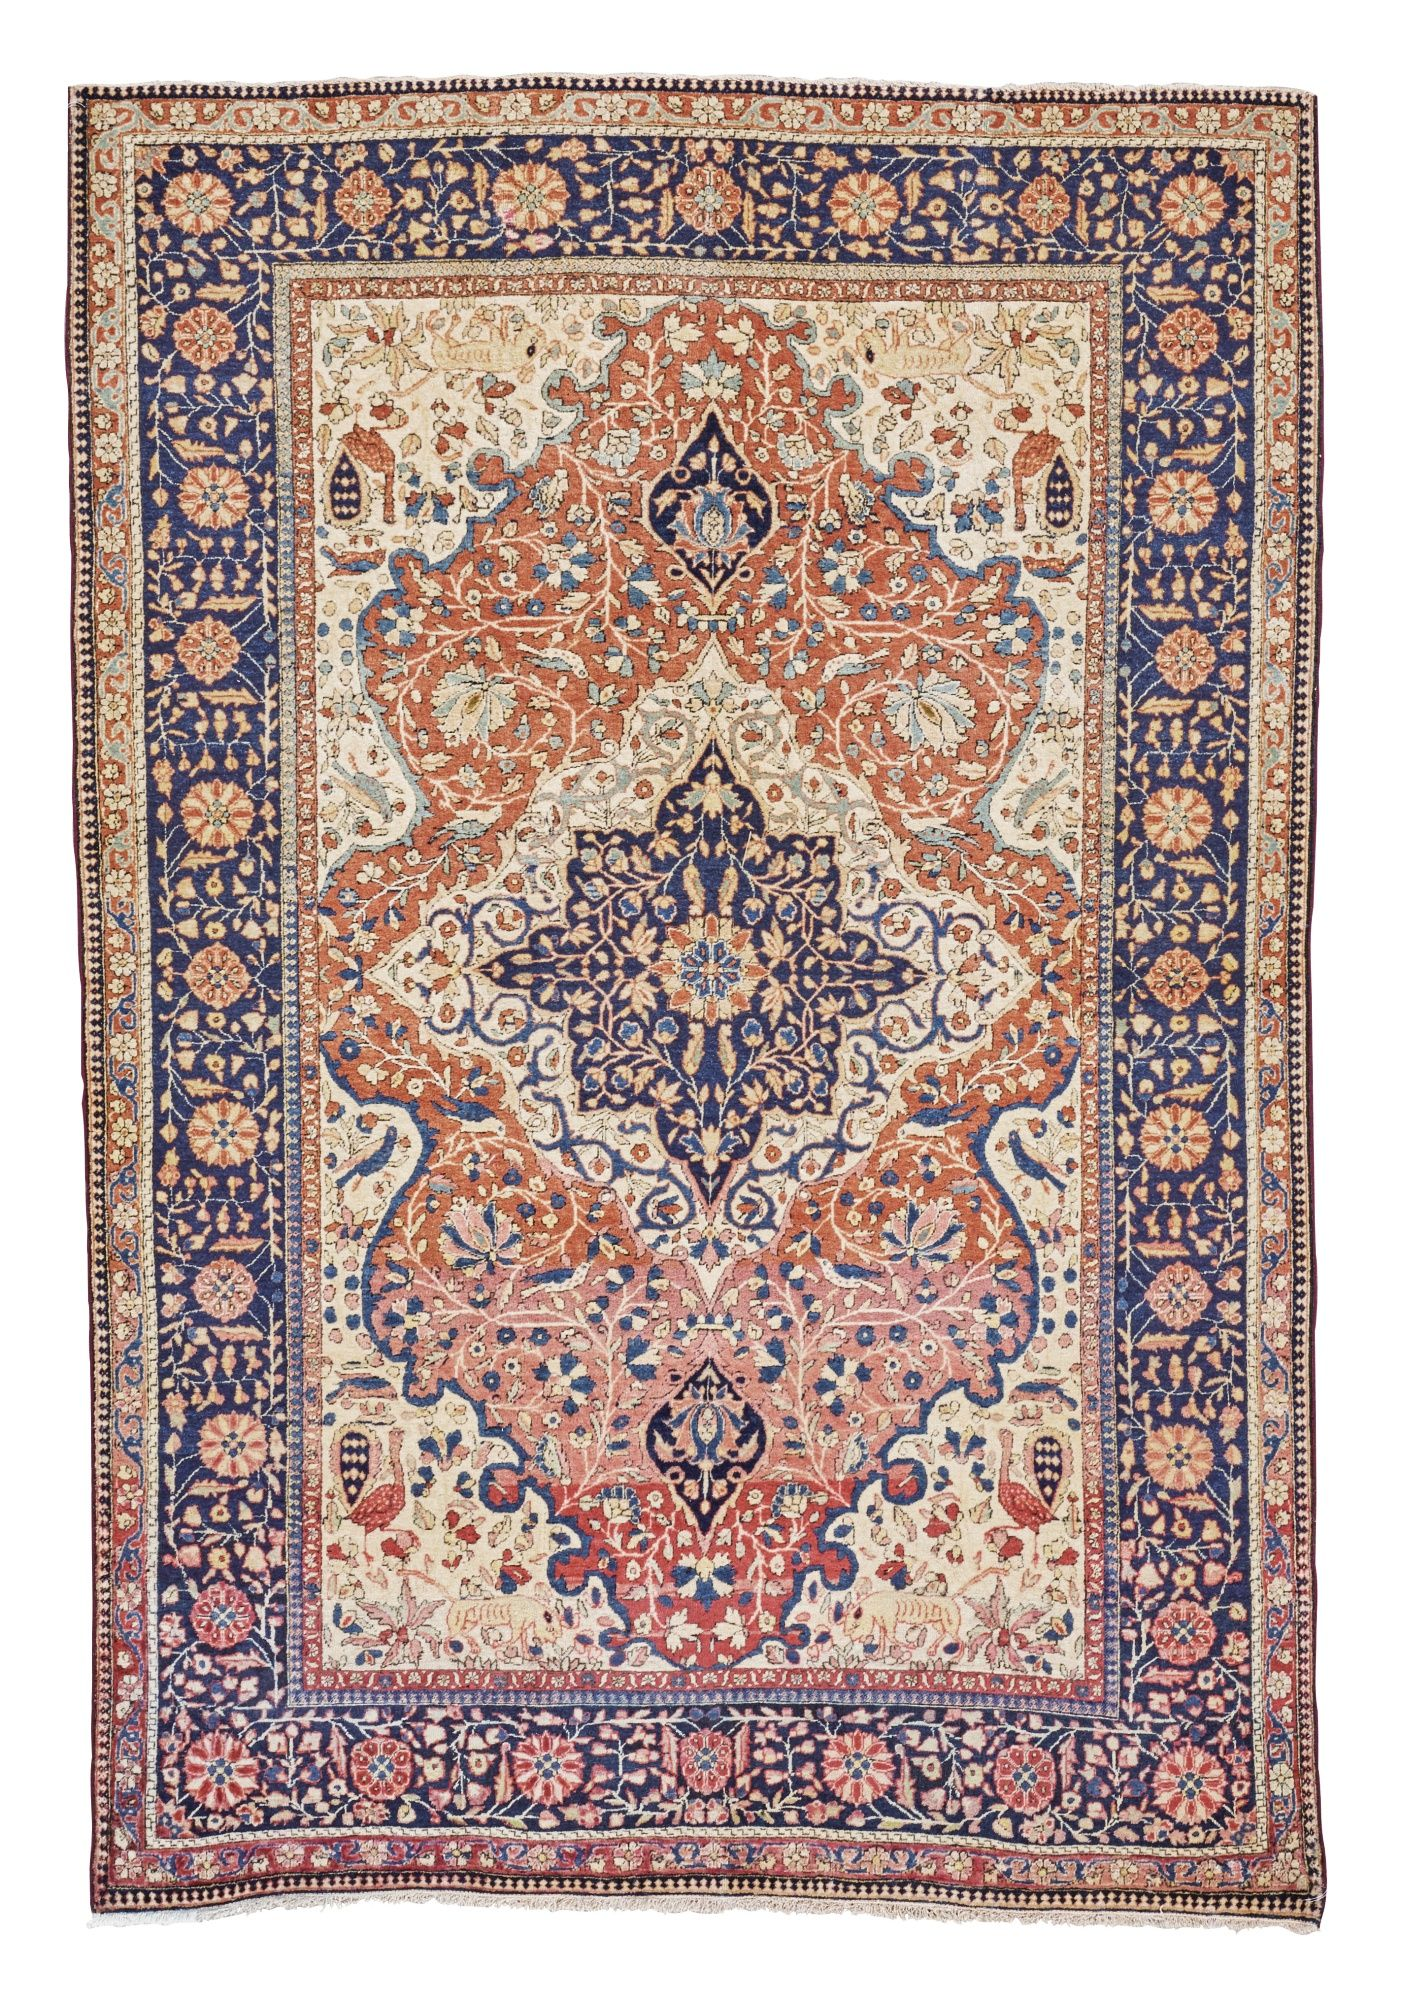 Large Floral Vintage Persian Silk Kashan Rug 60019 In 2020 Inspiral Carpets Rugs Where To Buy Carpet